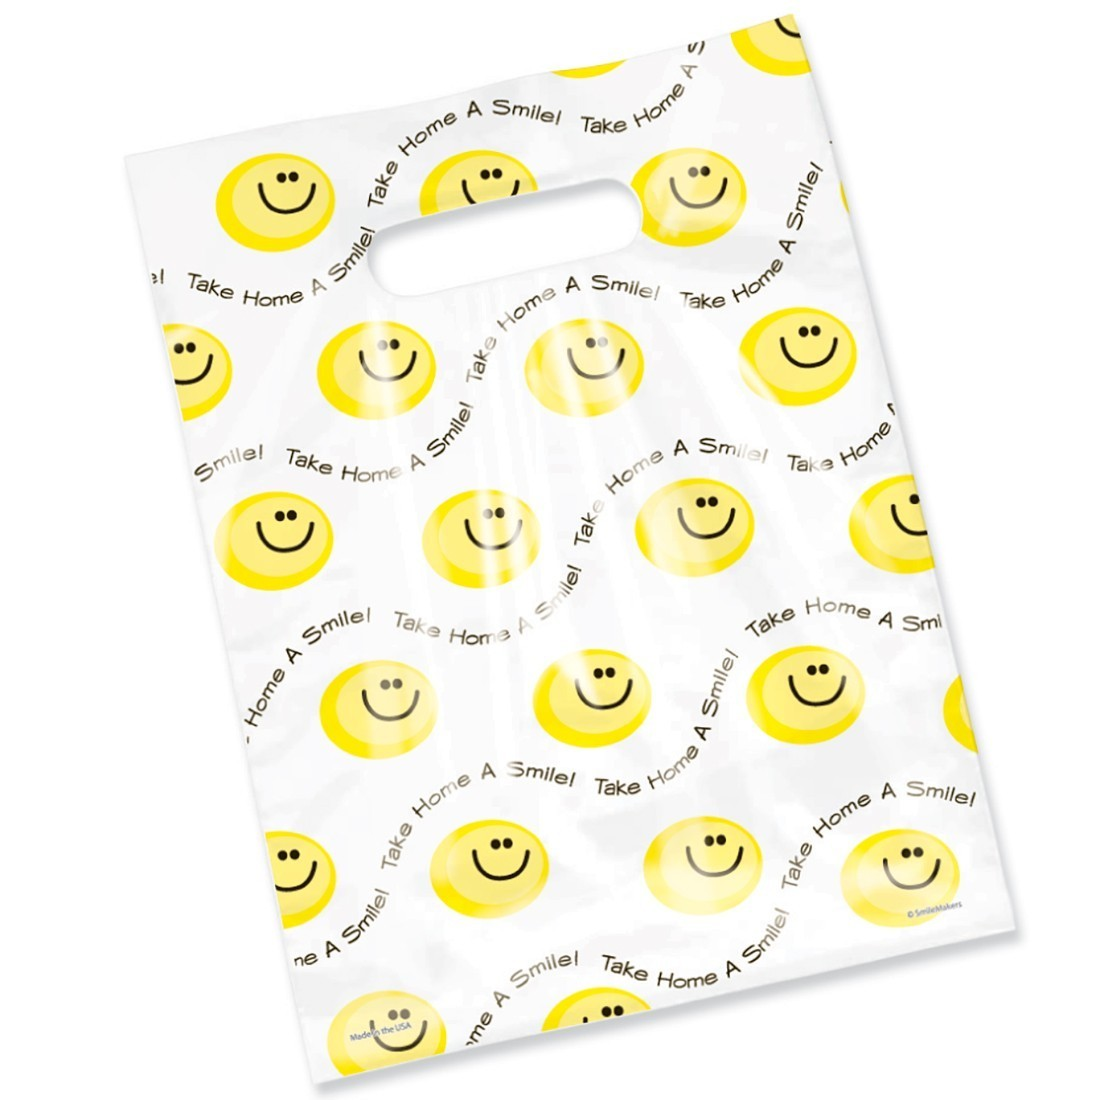 Scatter Smiley Guy Bags                            [image]